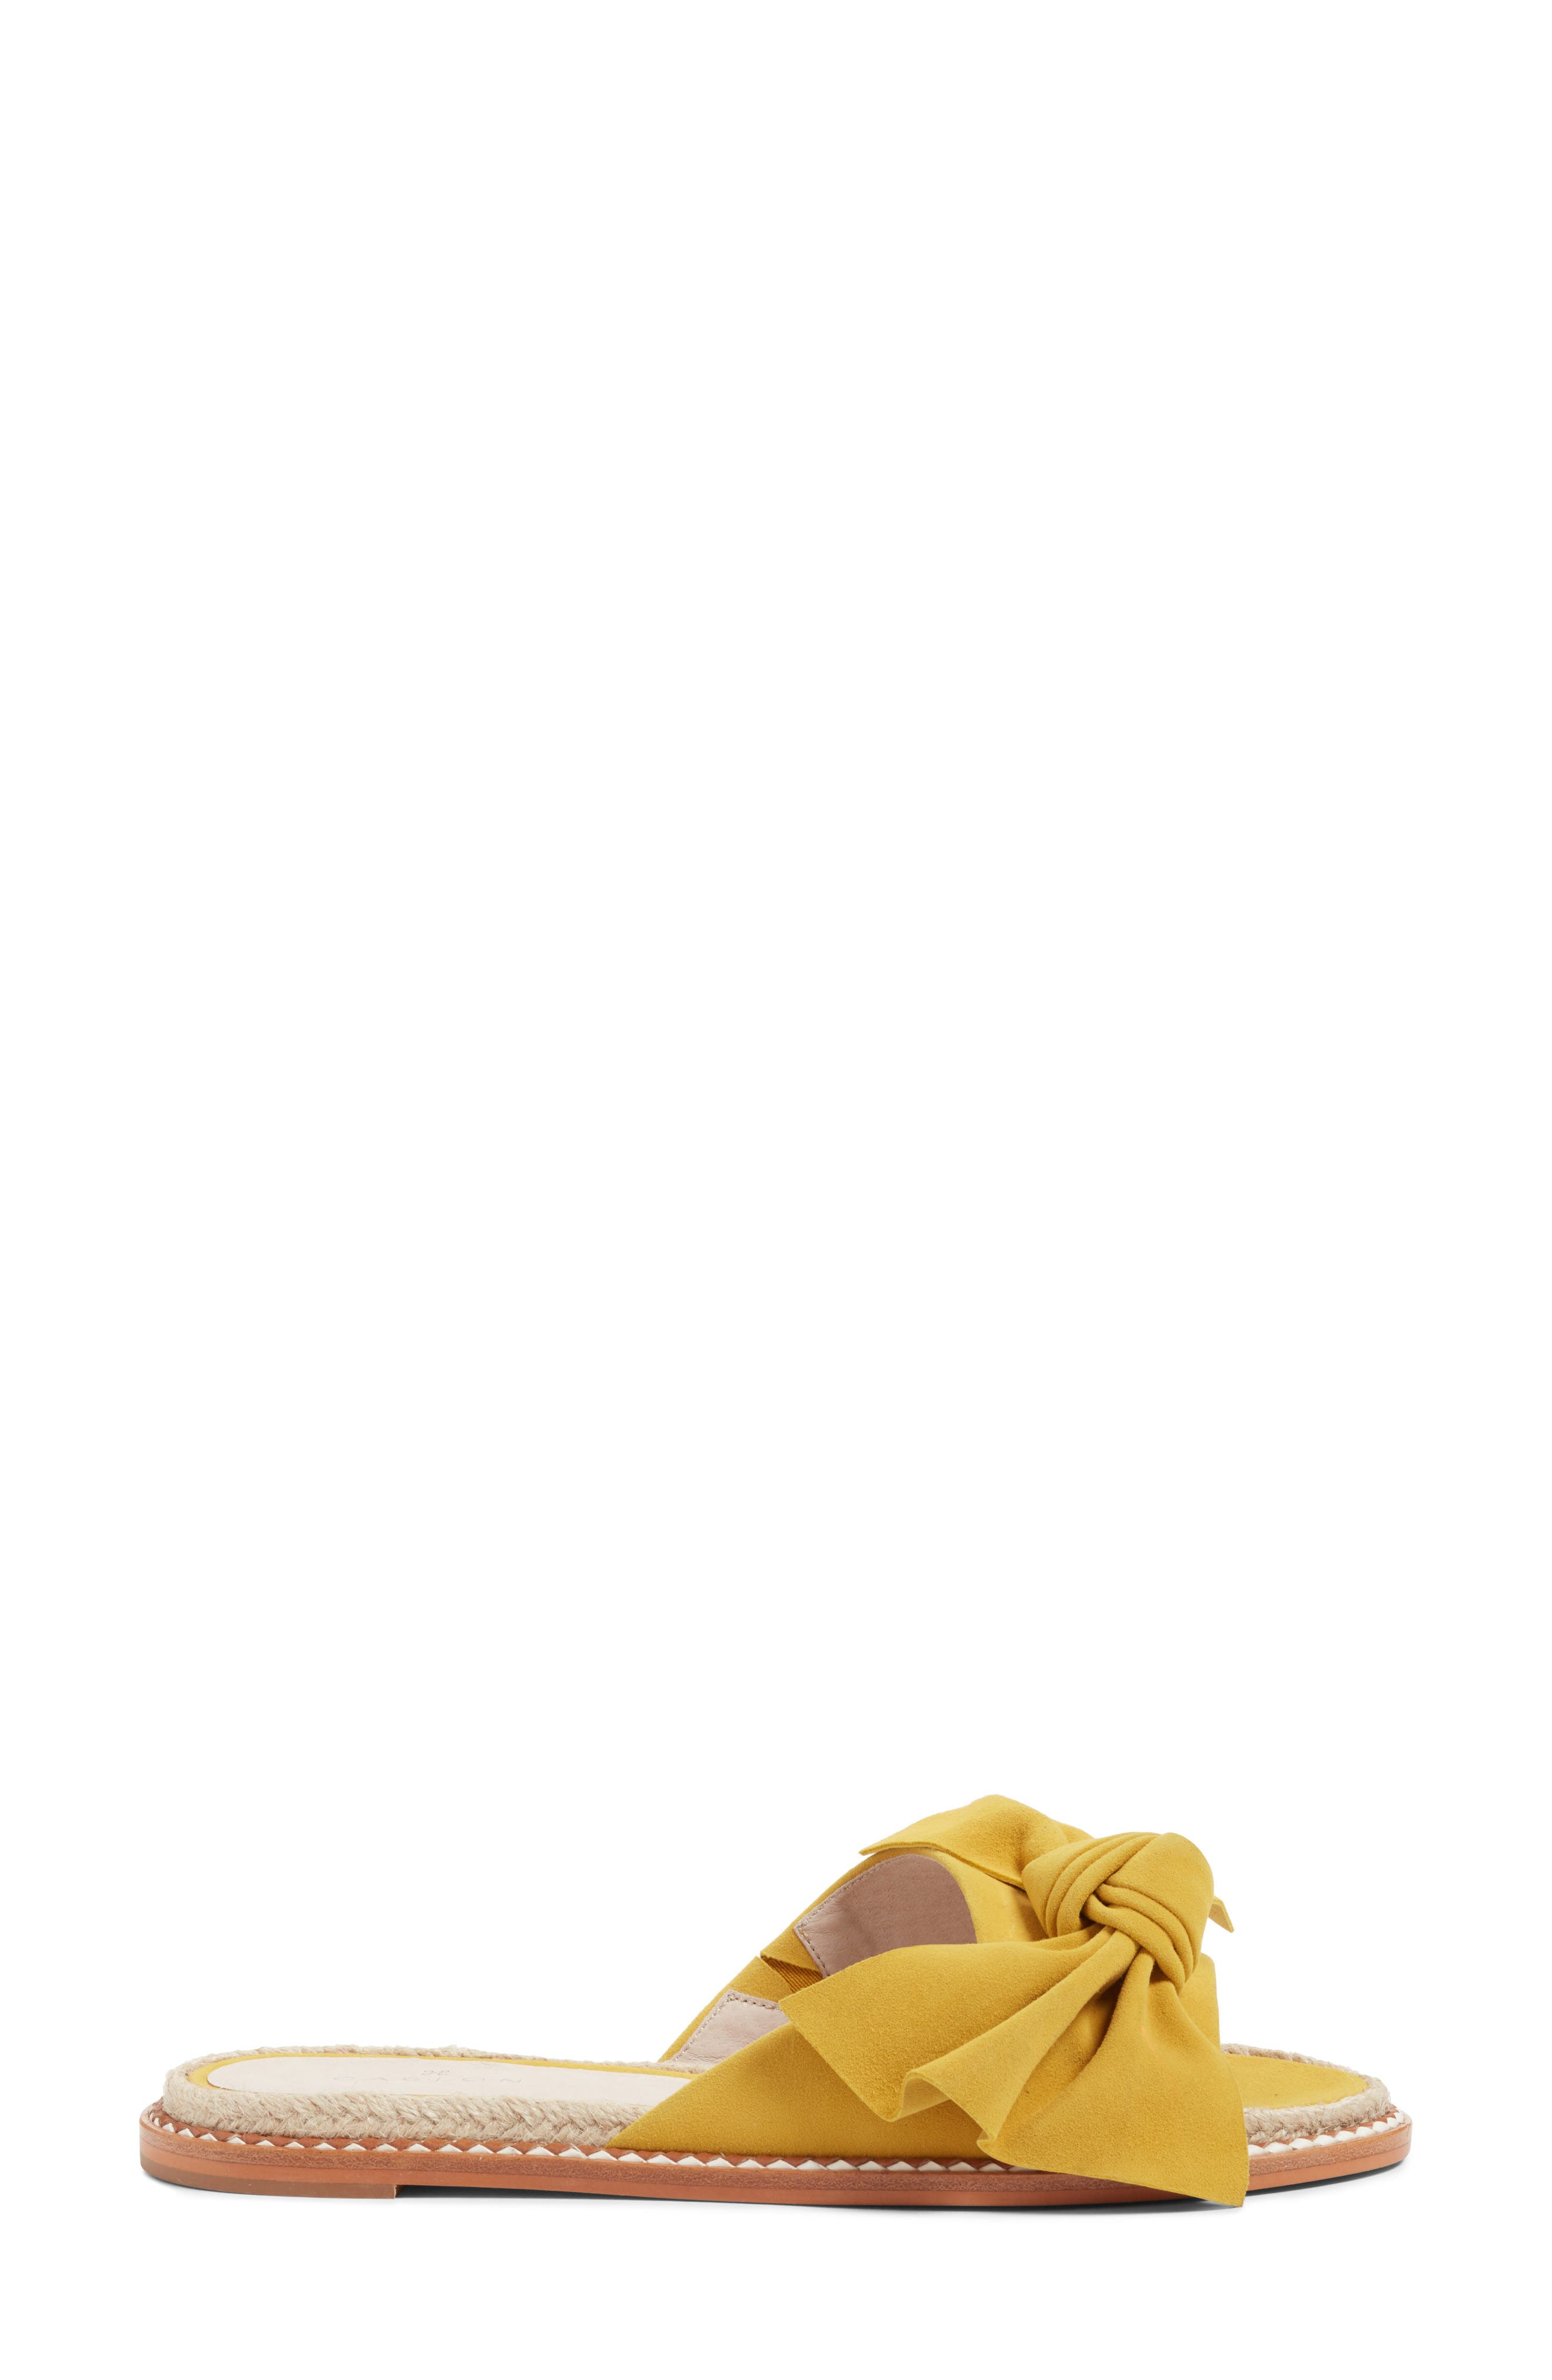 Darcie Slide Sandal,                             Alternate thumbnail 3, color,                             Mustard Suede